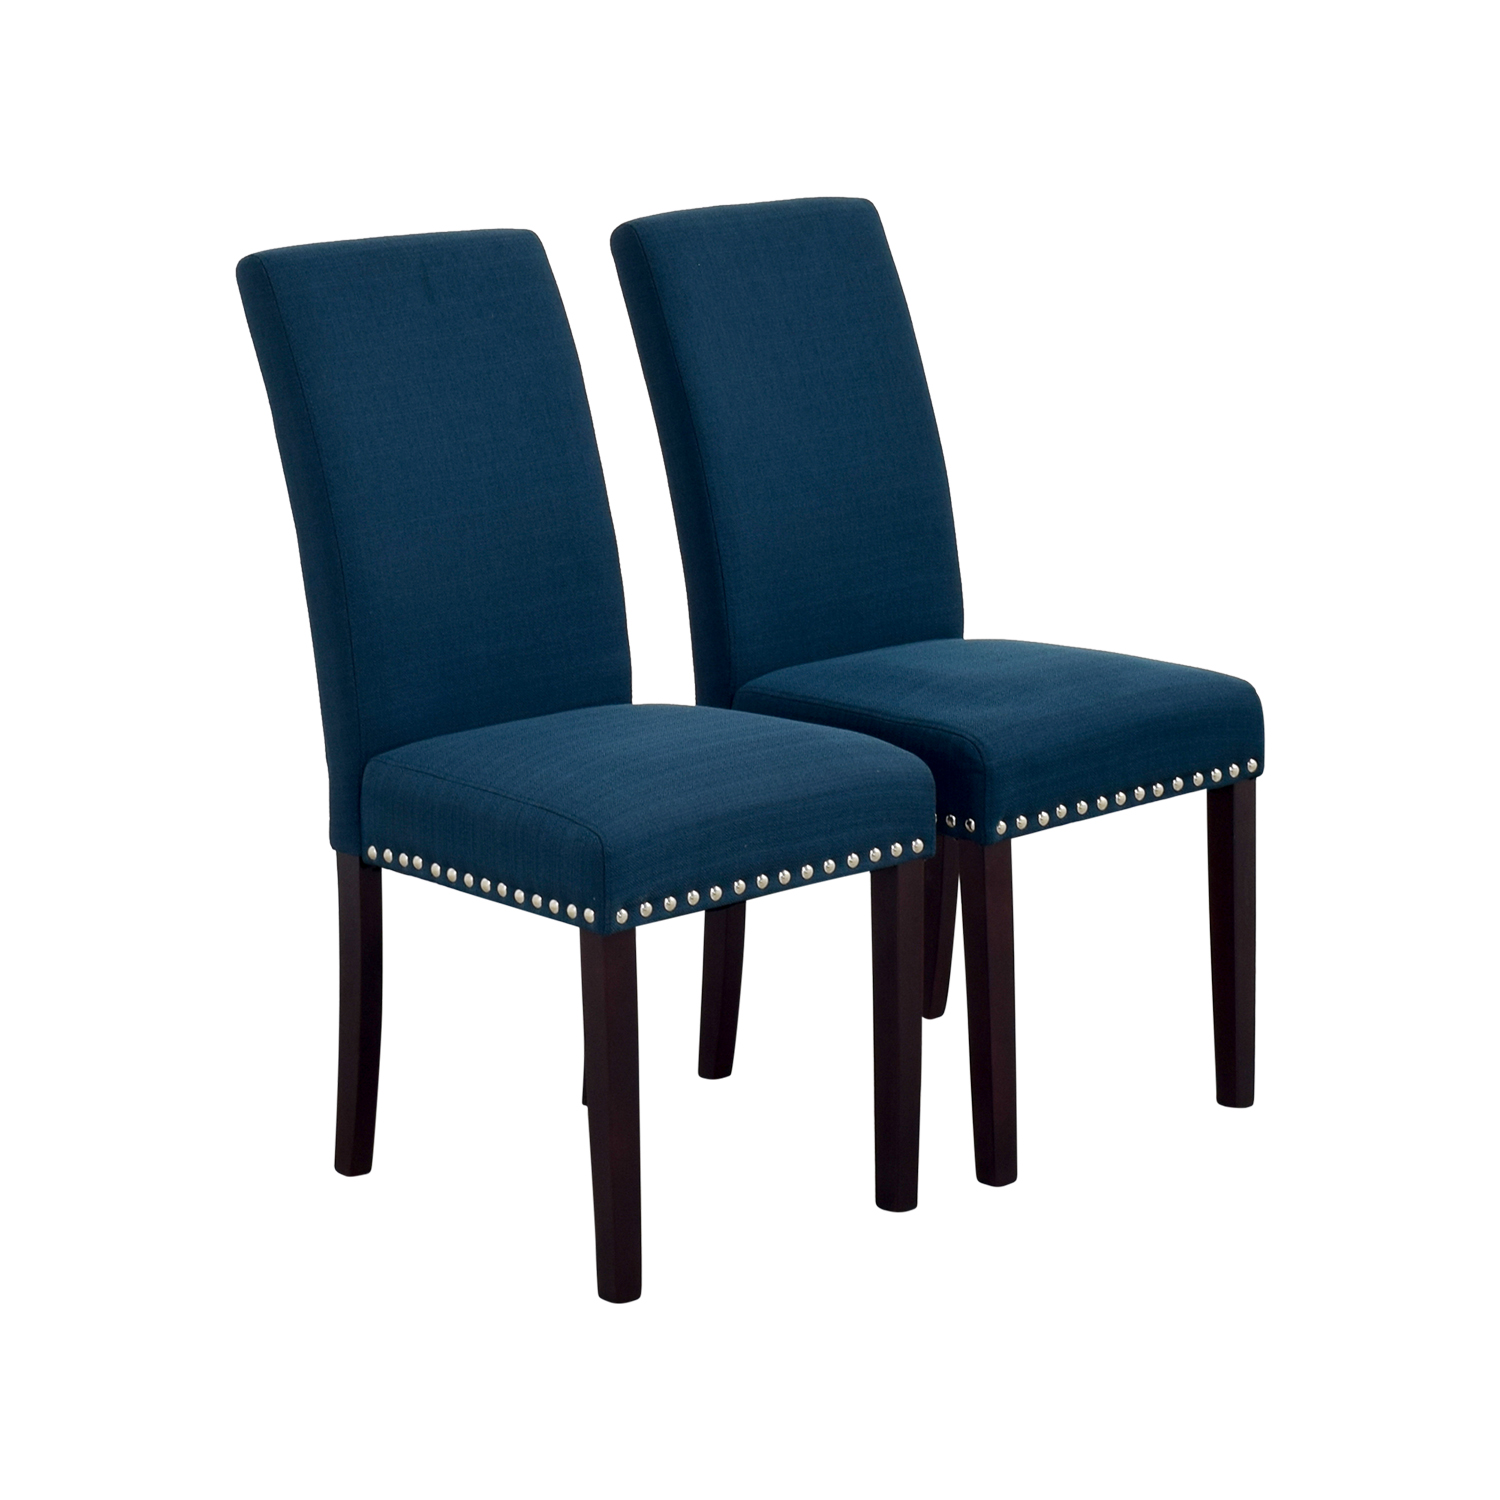 72 off modway modway madrid nail head teal dining for Teal chairs for sale